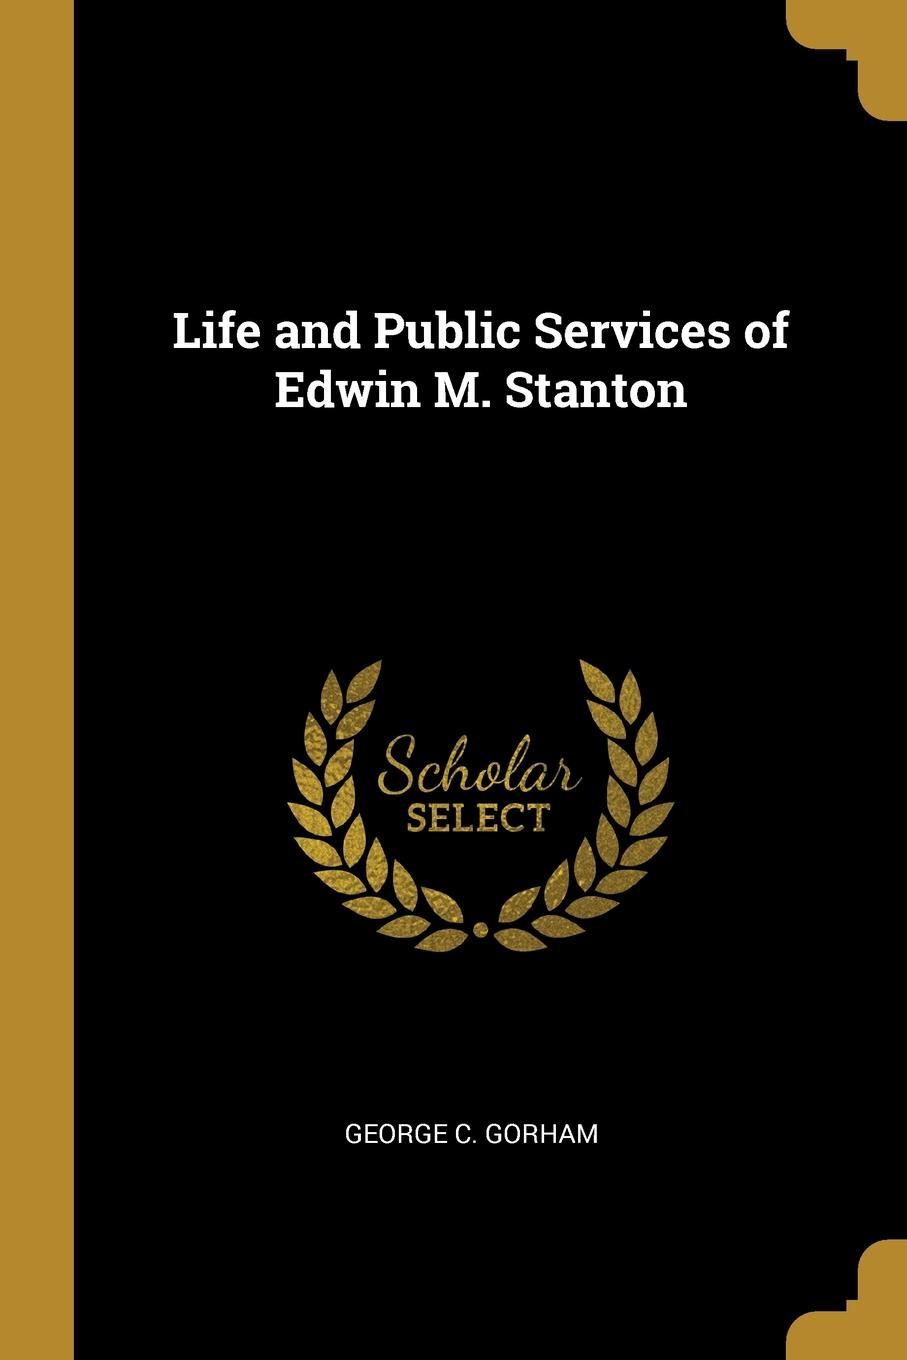 Life and Public Services of Edwin M. Stanton